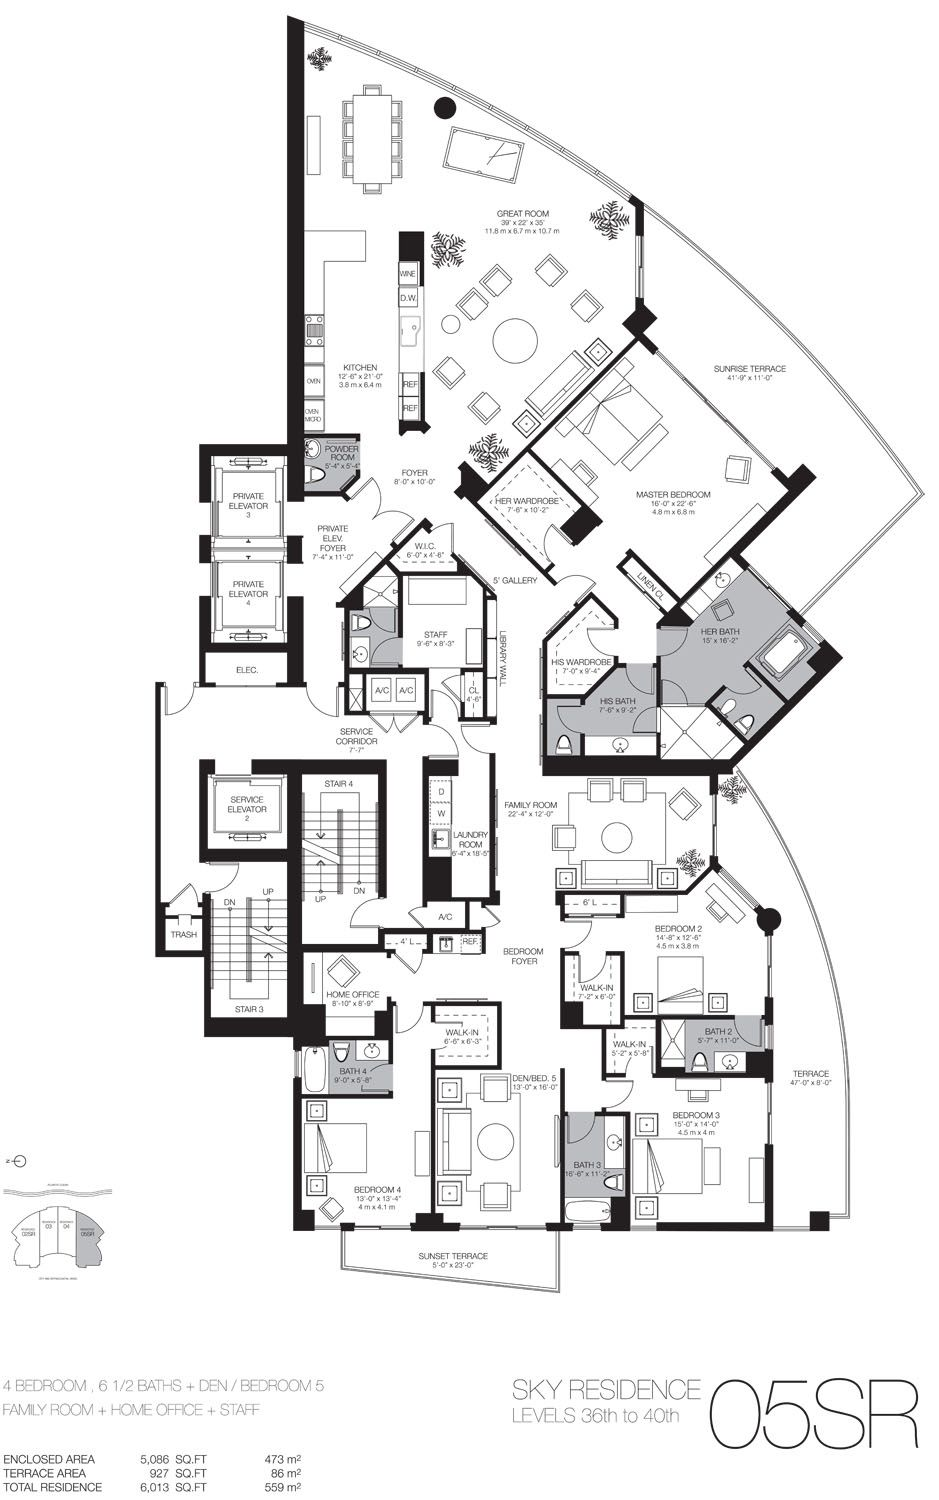 Marvelous Luxury Condominium Floor Plans #7: Luxury Beach Home Floor Plans | Miami Luxury Real Estate Miami Beach Luxury  Homes Condos